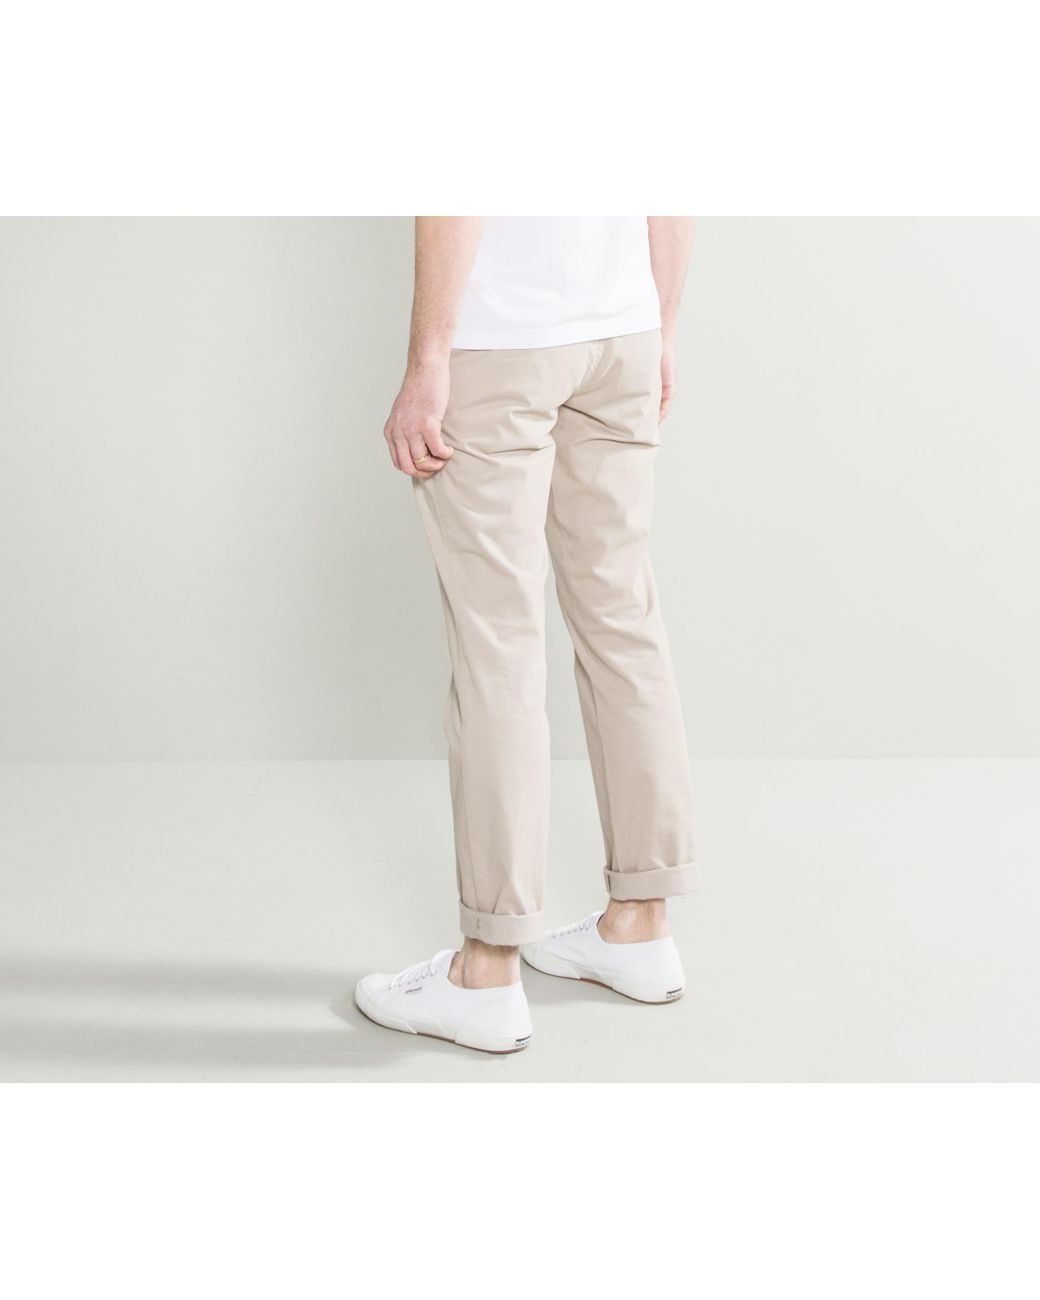 Polo Ralph Lauren Men/'s Woven Logo Tab Stretch Classic Fit Chino Pants